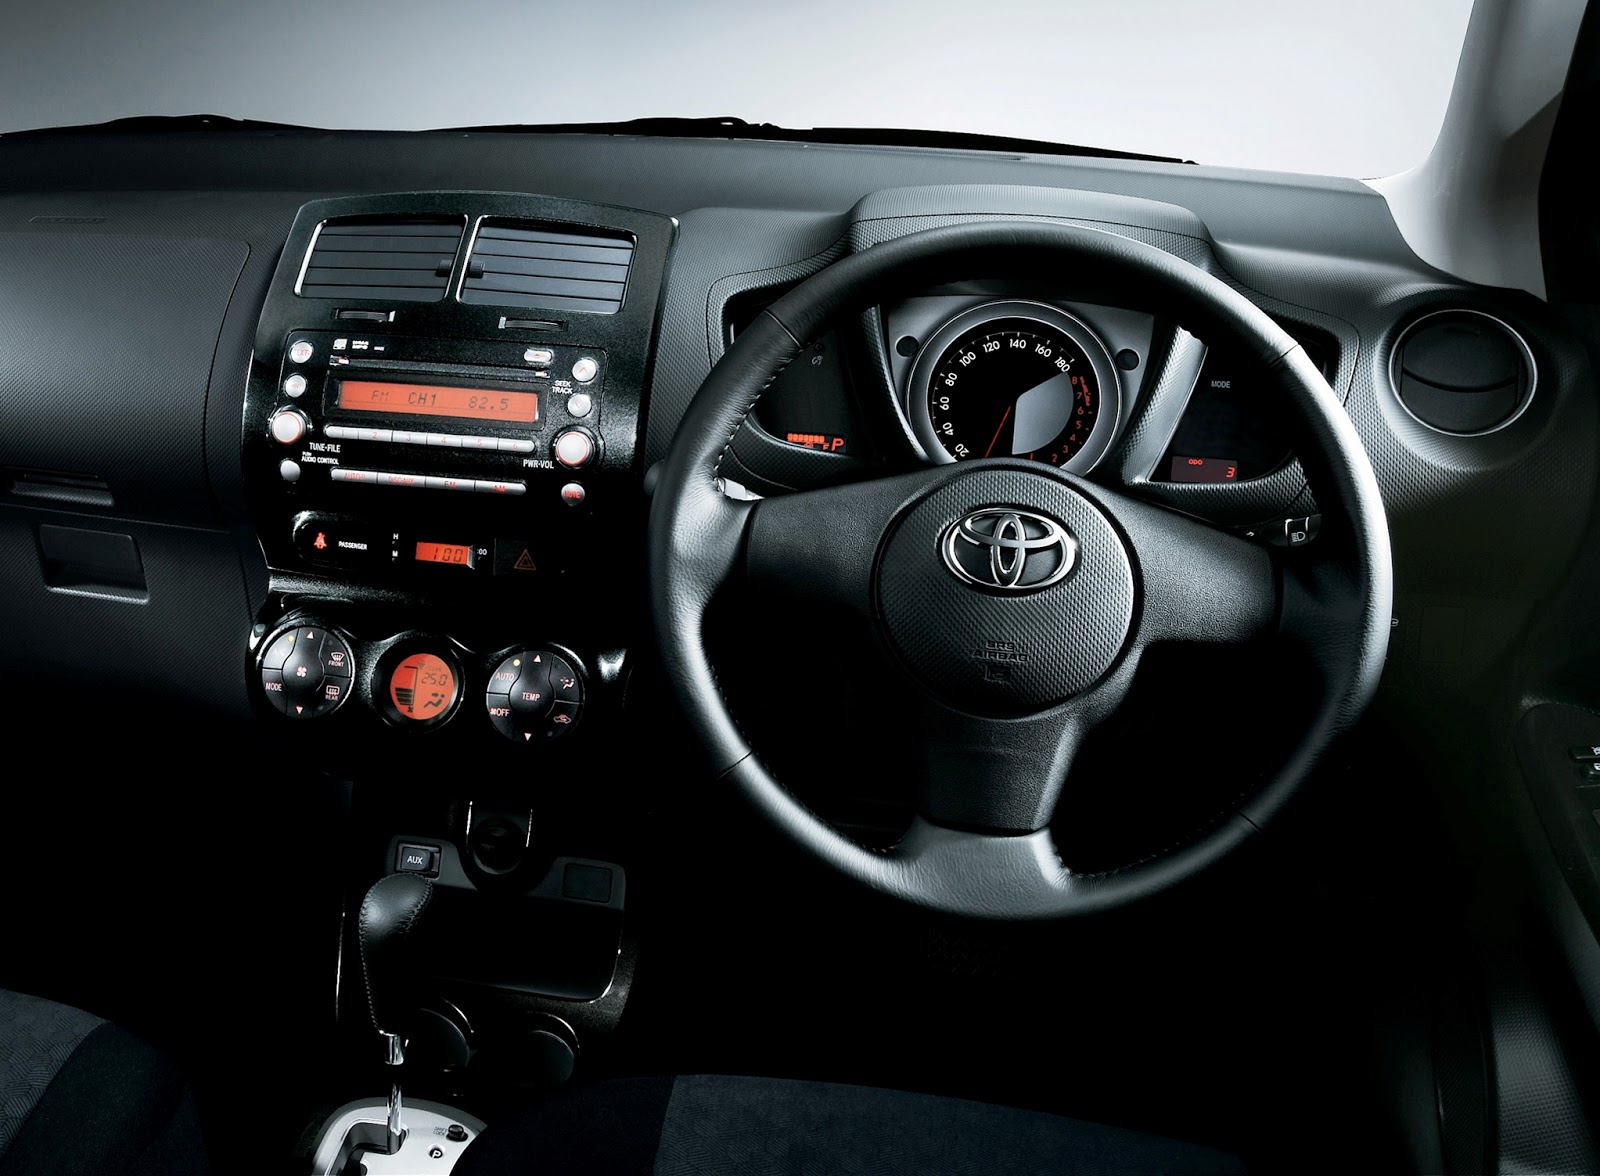 Toyota IST price in Pakistan